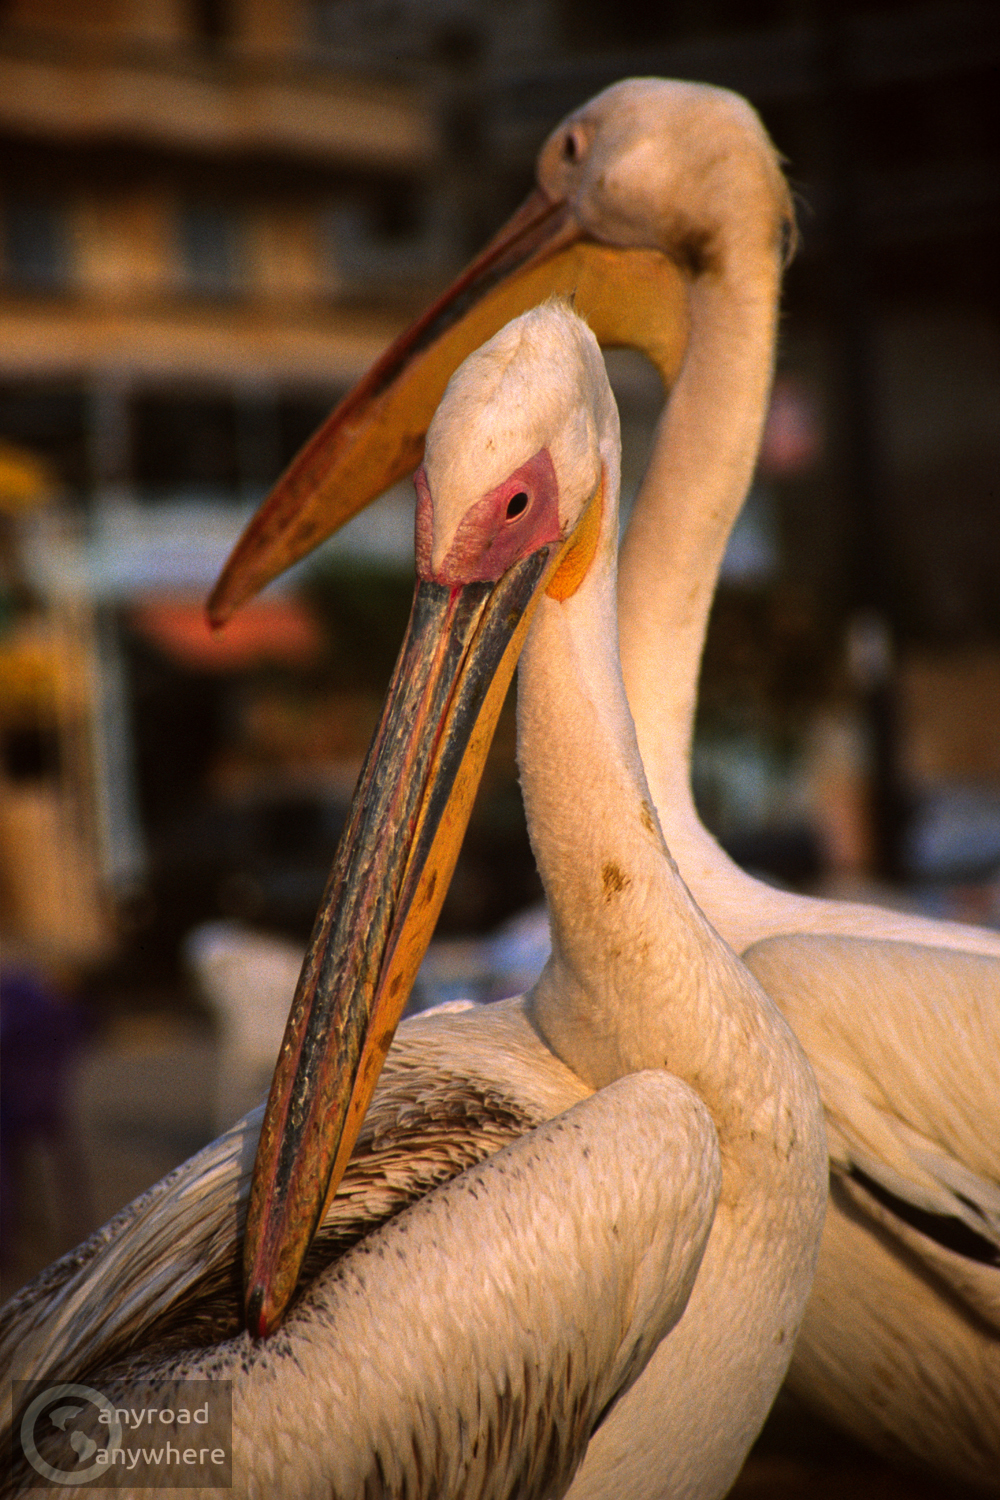 These pelicans were kept to catch fish. We saw them in the port of Tartus